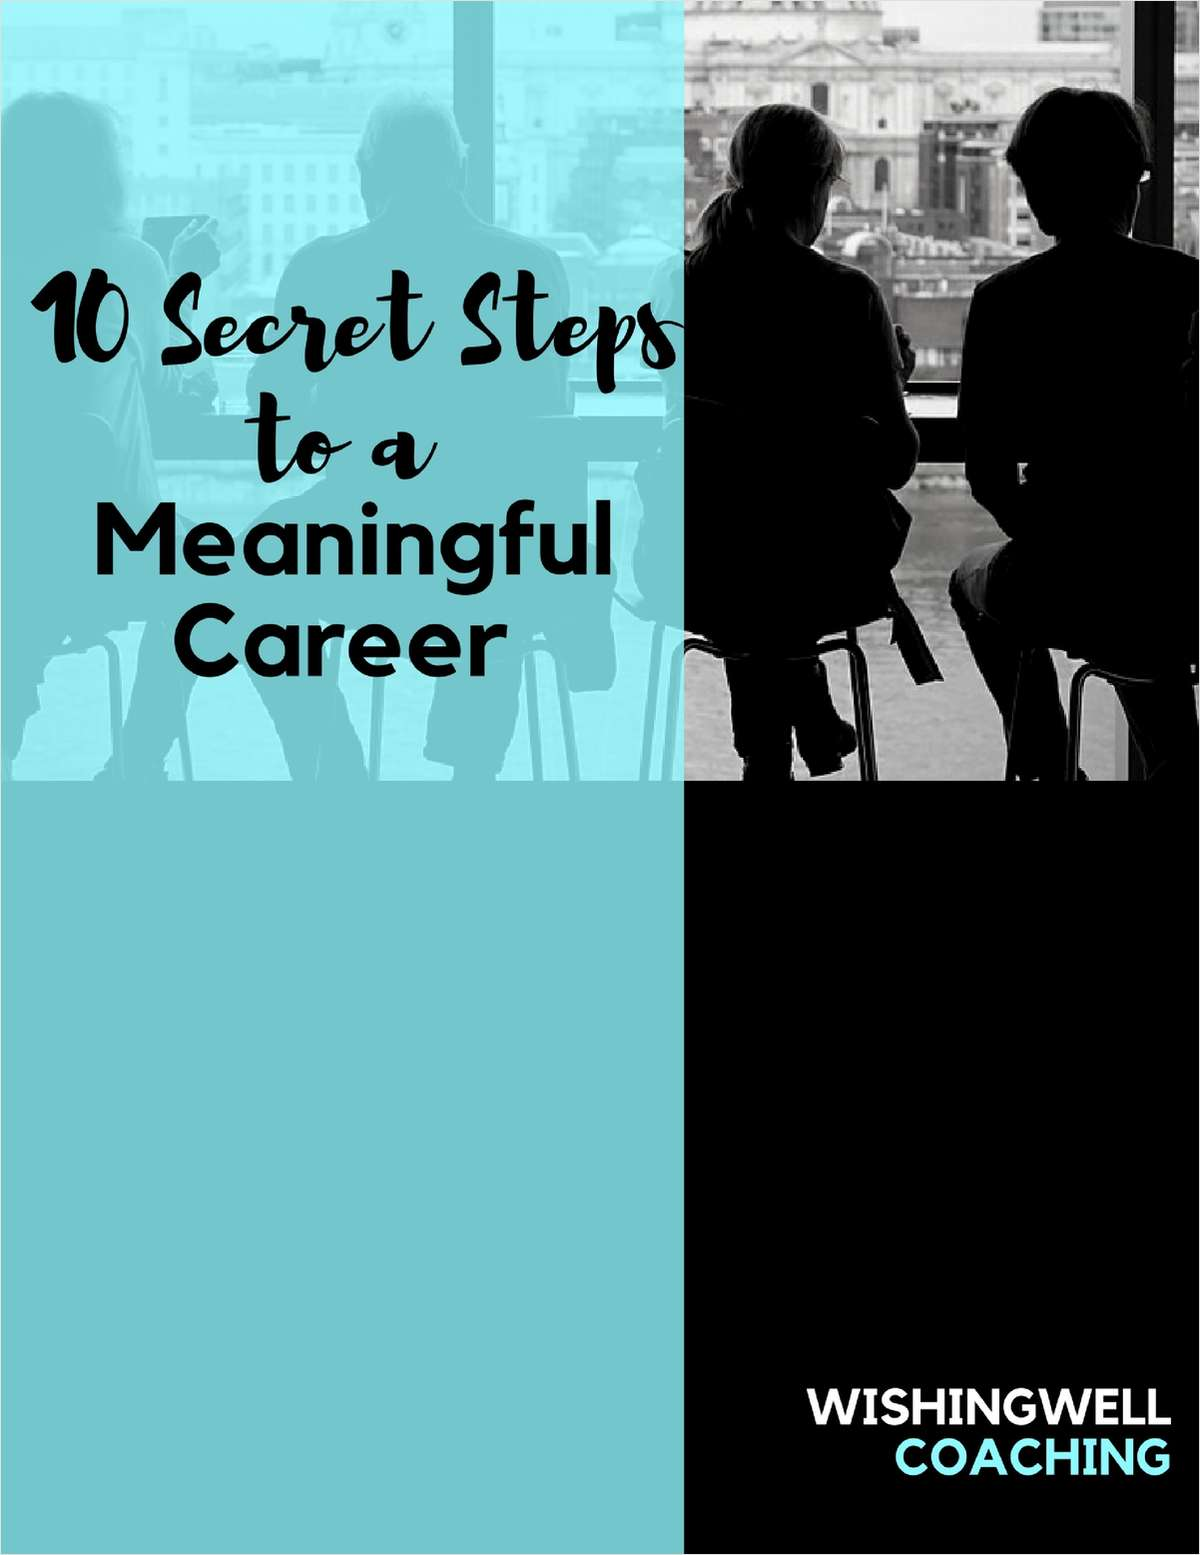 10 Secret Steps to a Meaningful Career